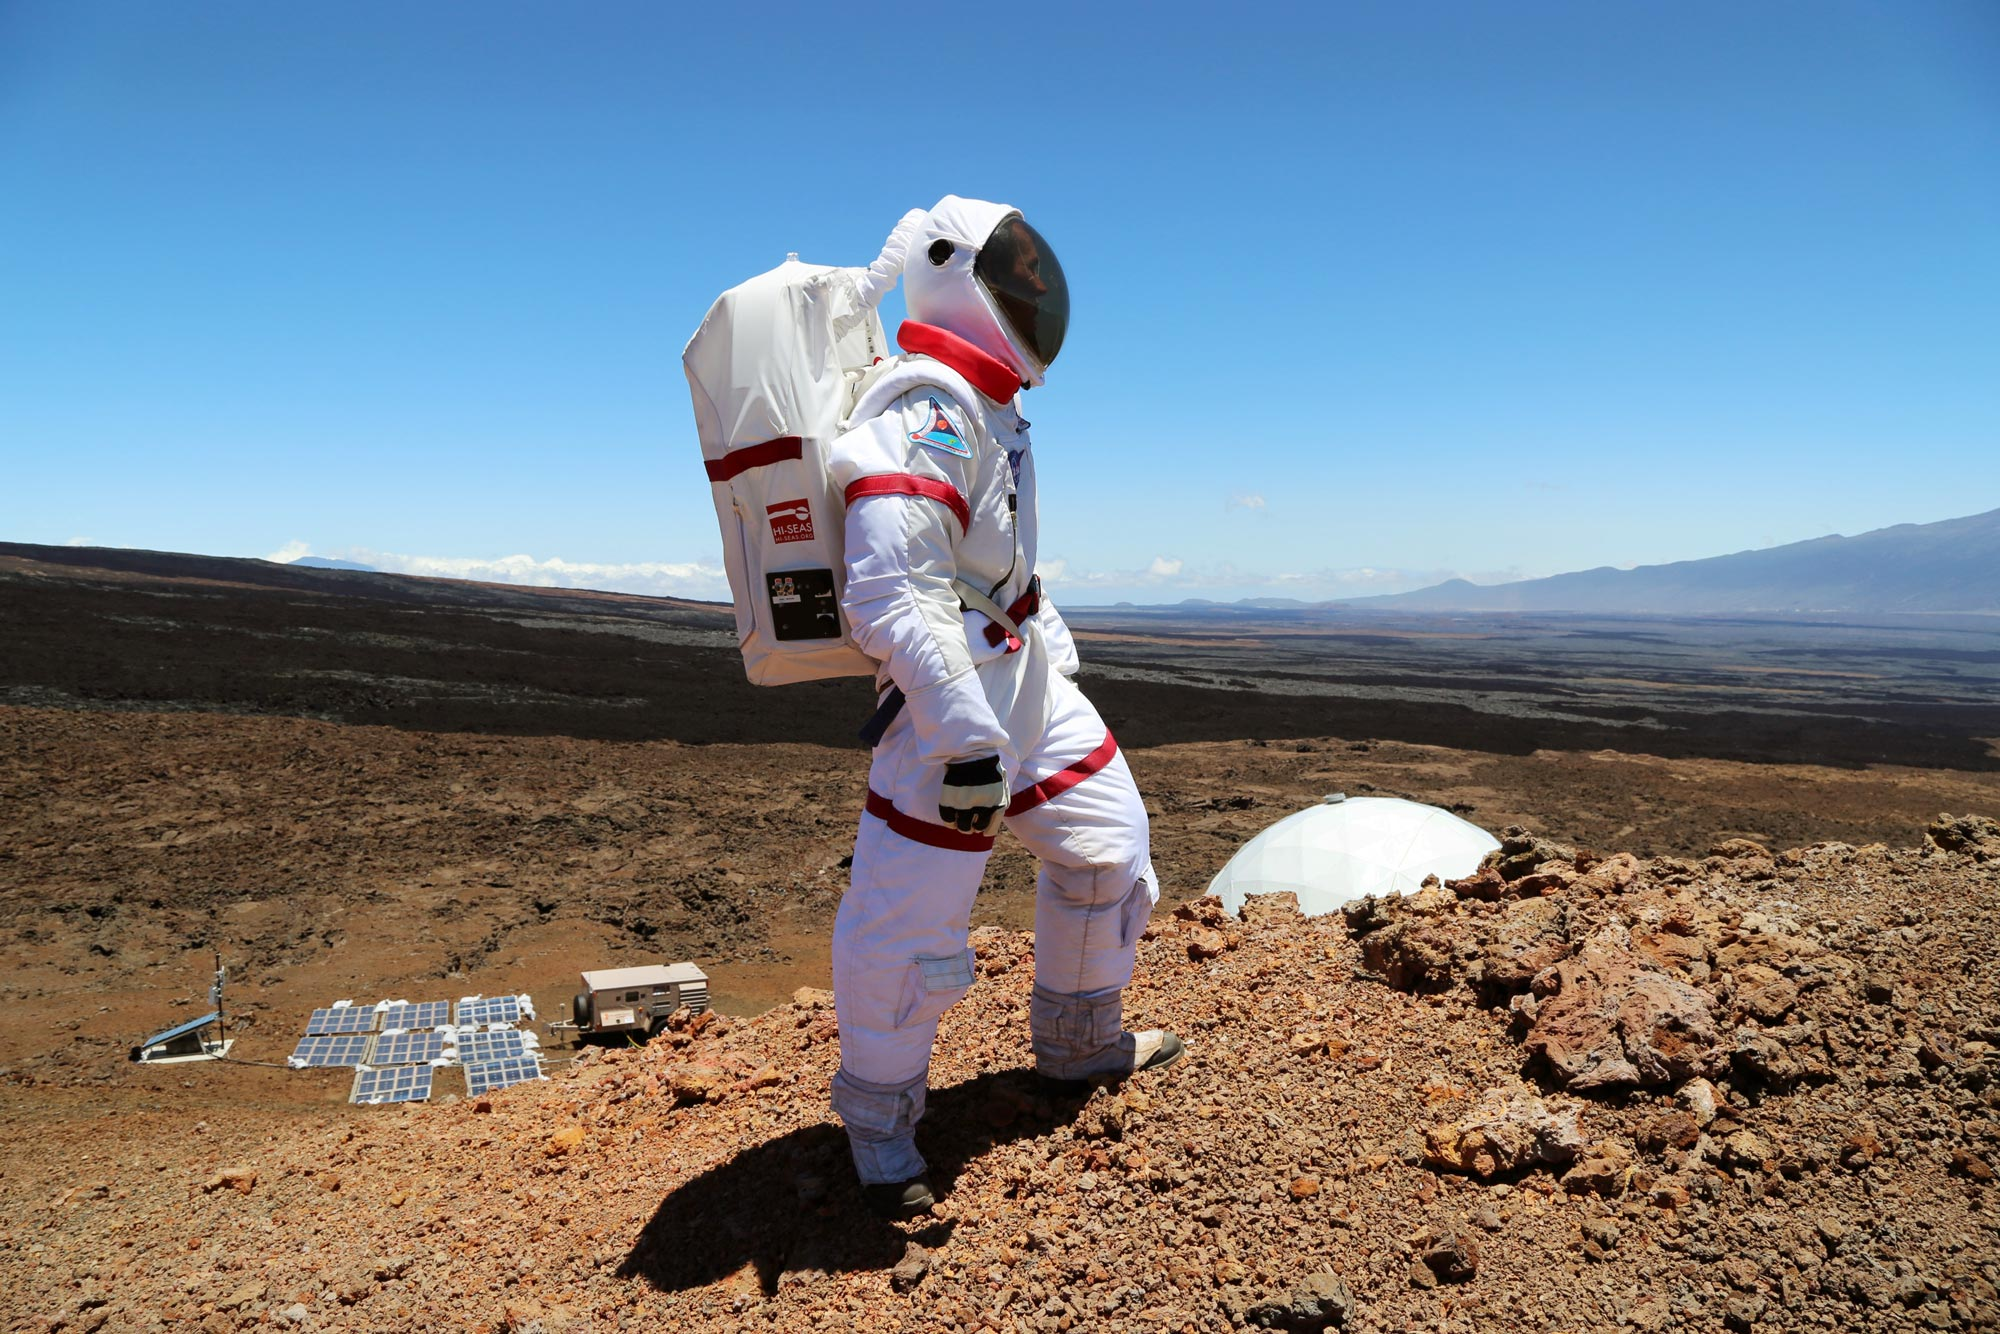 Comfort food in space: the final frontier   ideas.ted.com